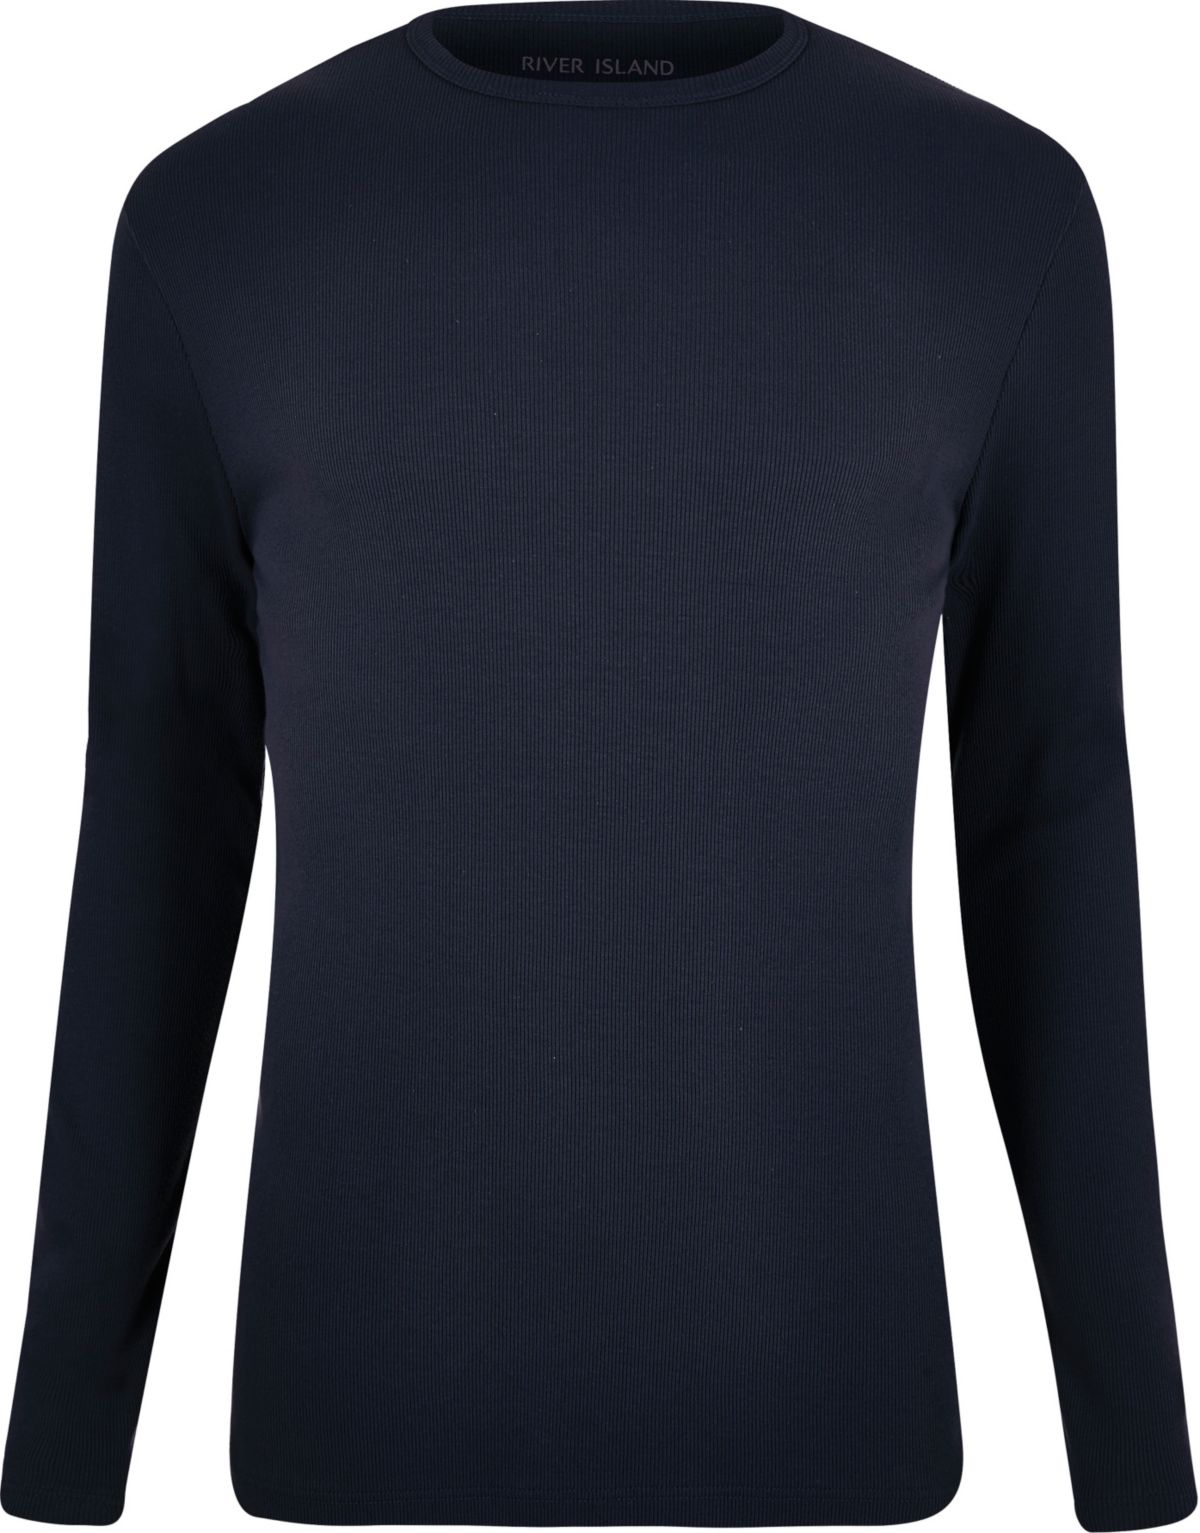 Navy ribbed slim fit long sleeve T-shirt